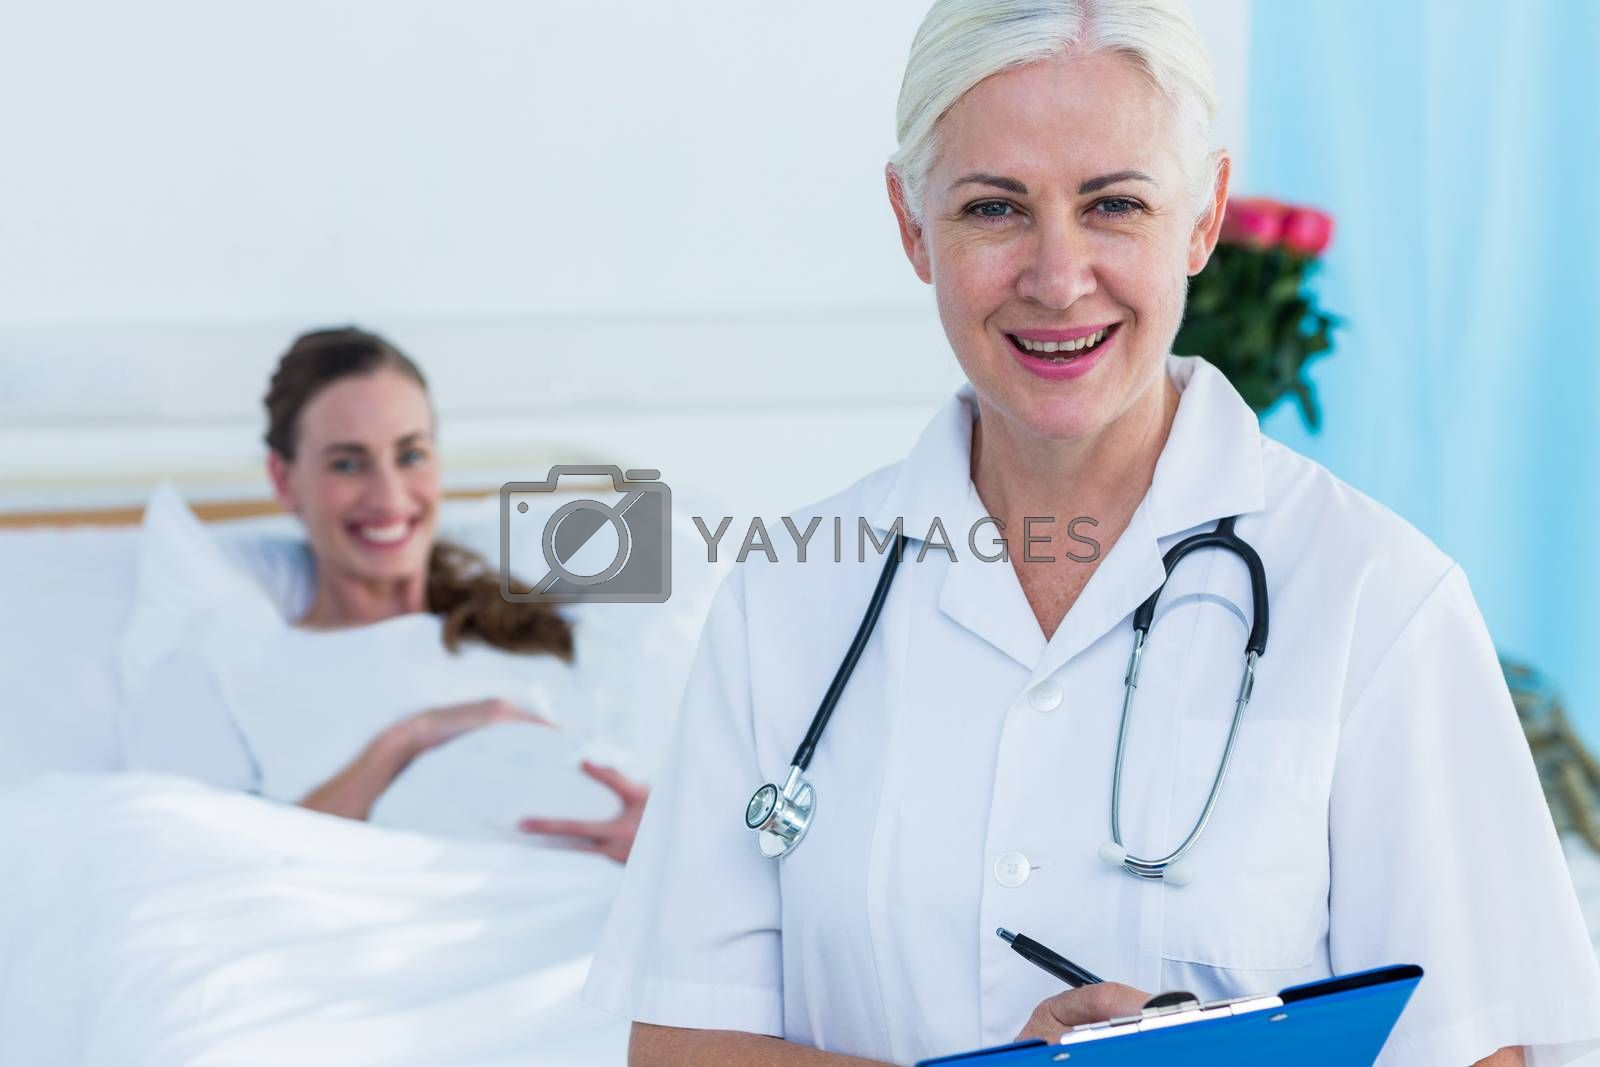 Royalty free image of Female doctor and pregnant woman smiling at camera by Wavebreakmedia